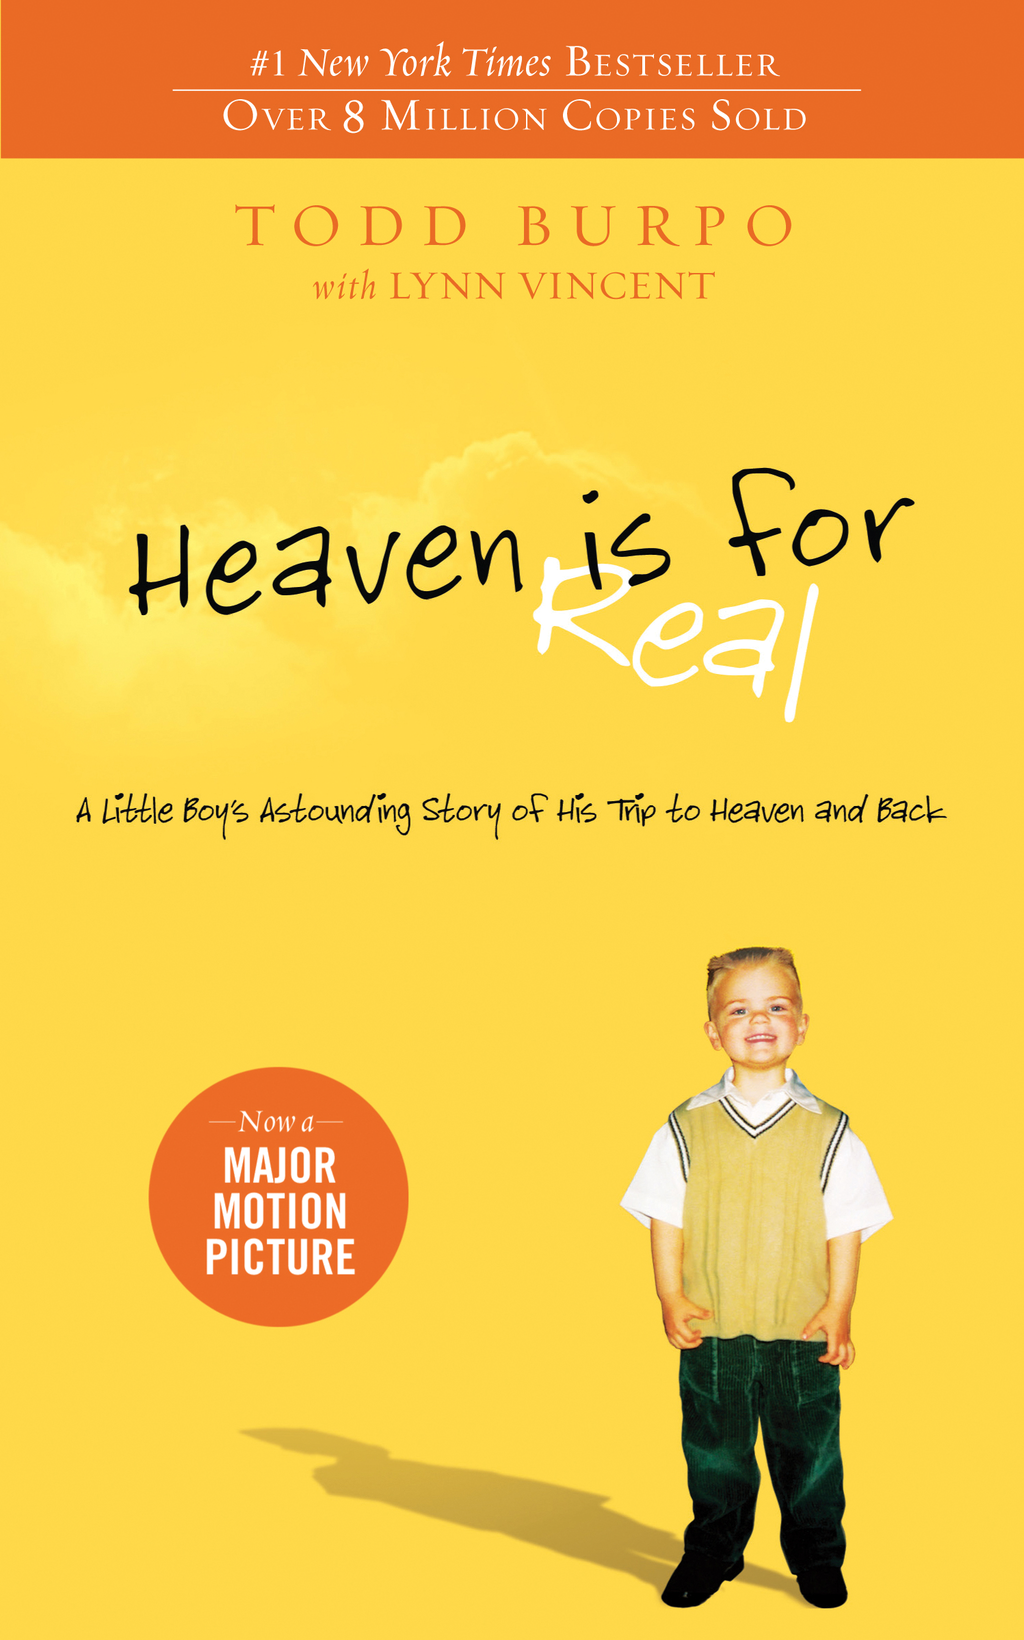 Heaven is for Real: A Little Boy's Astounding Story of His Trip to Heaven and Back A Little Boy's Astounding Story of His Trip to Heaven and Back